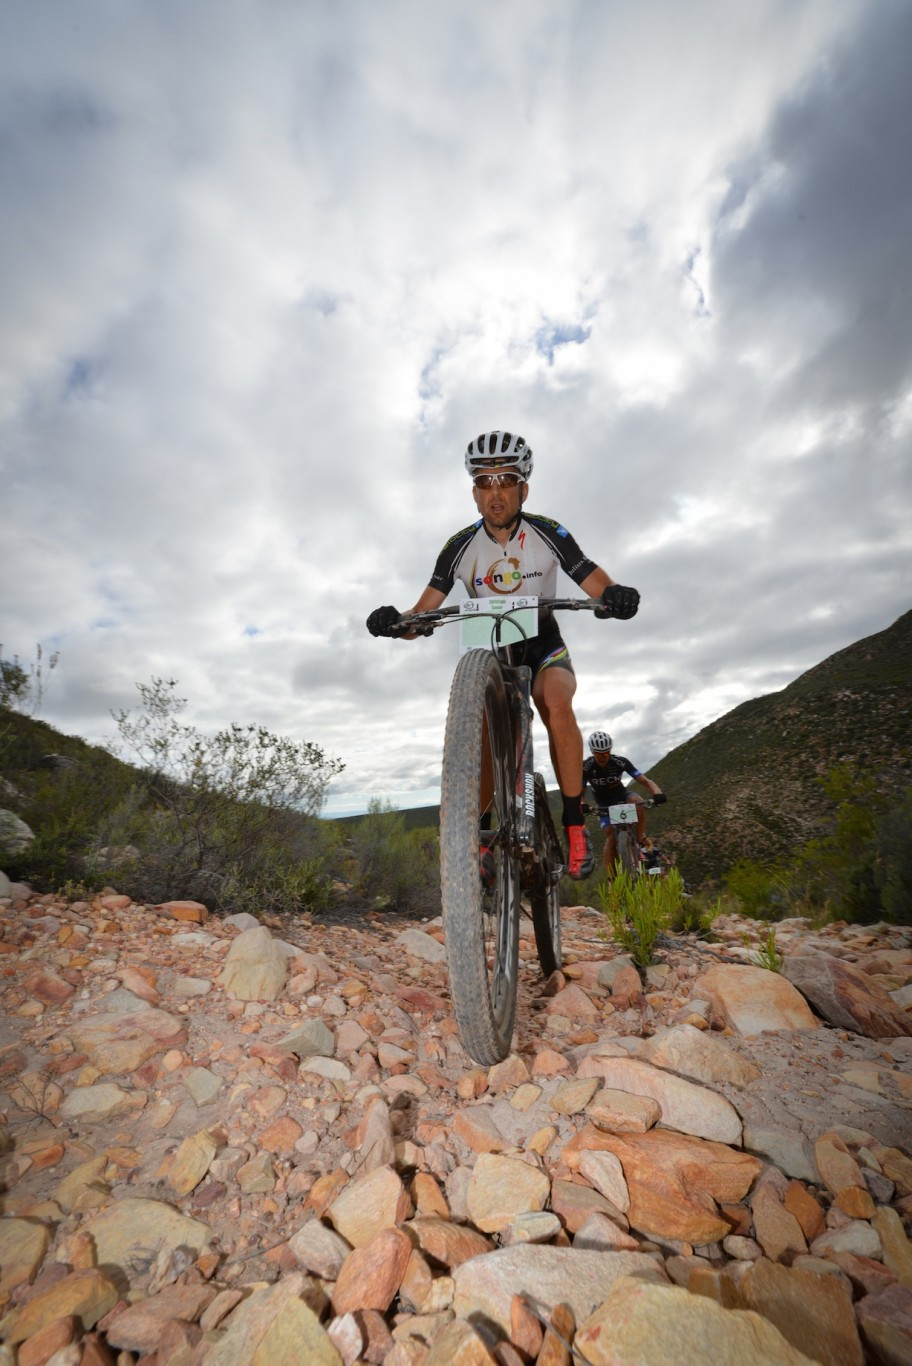 R100 000 up for record time in the Fairview Attakwas Extreme Mountain Bike Challenge